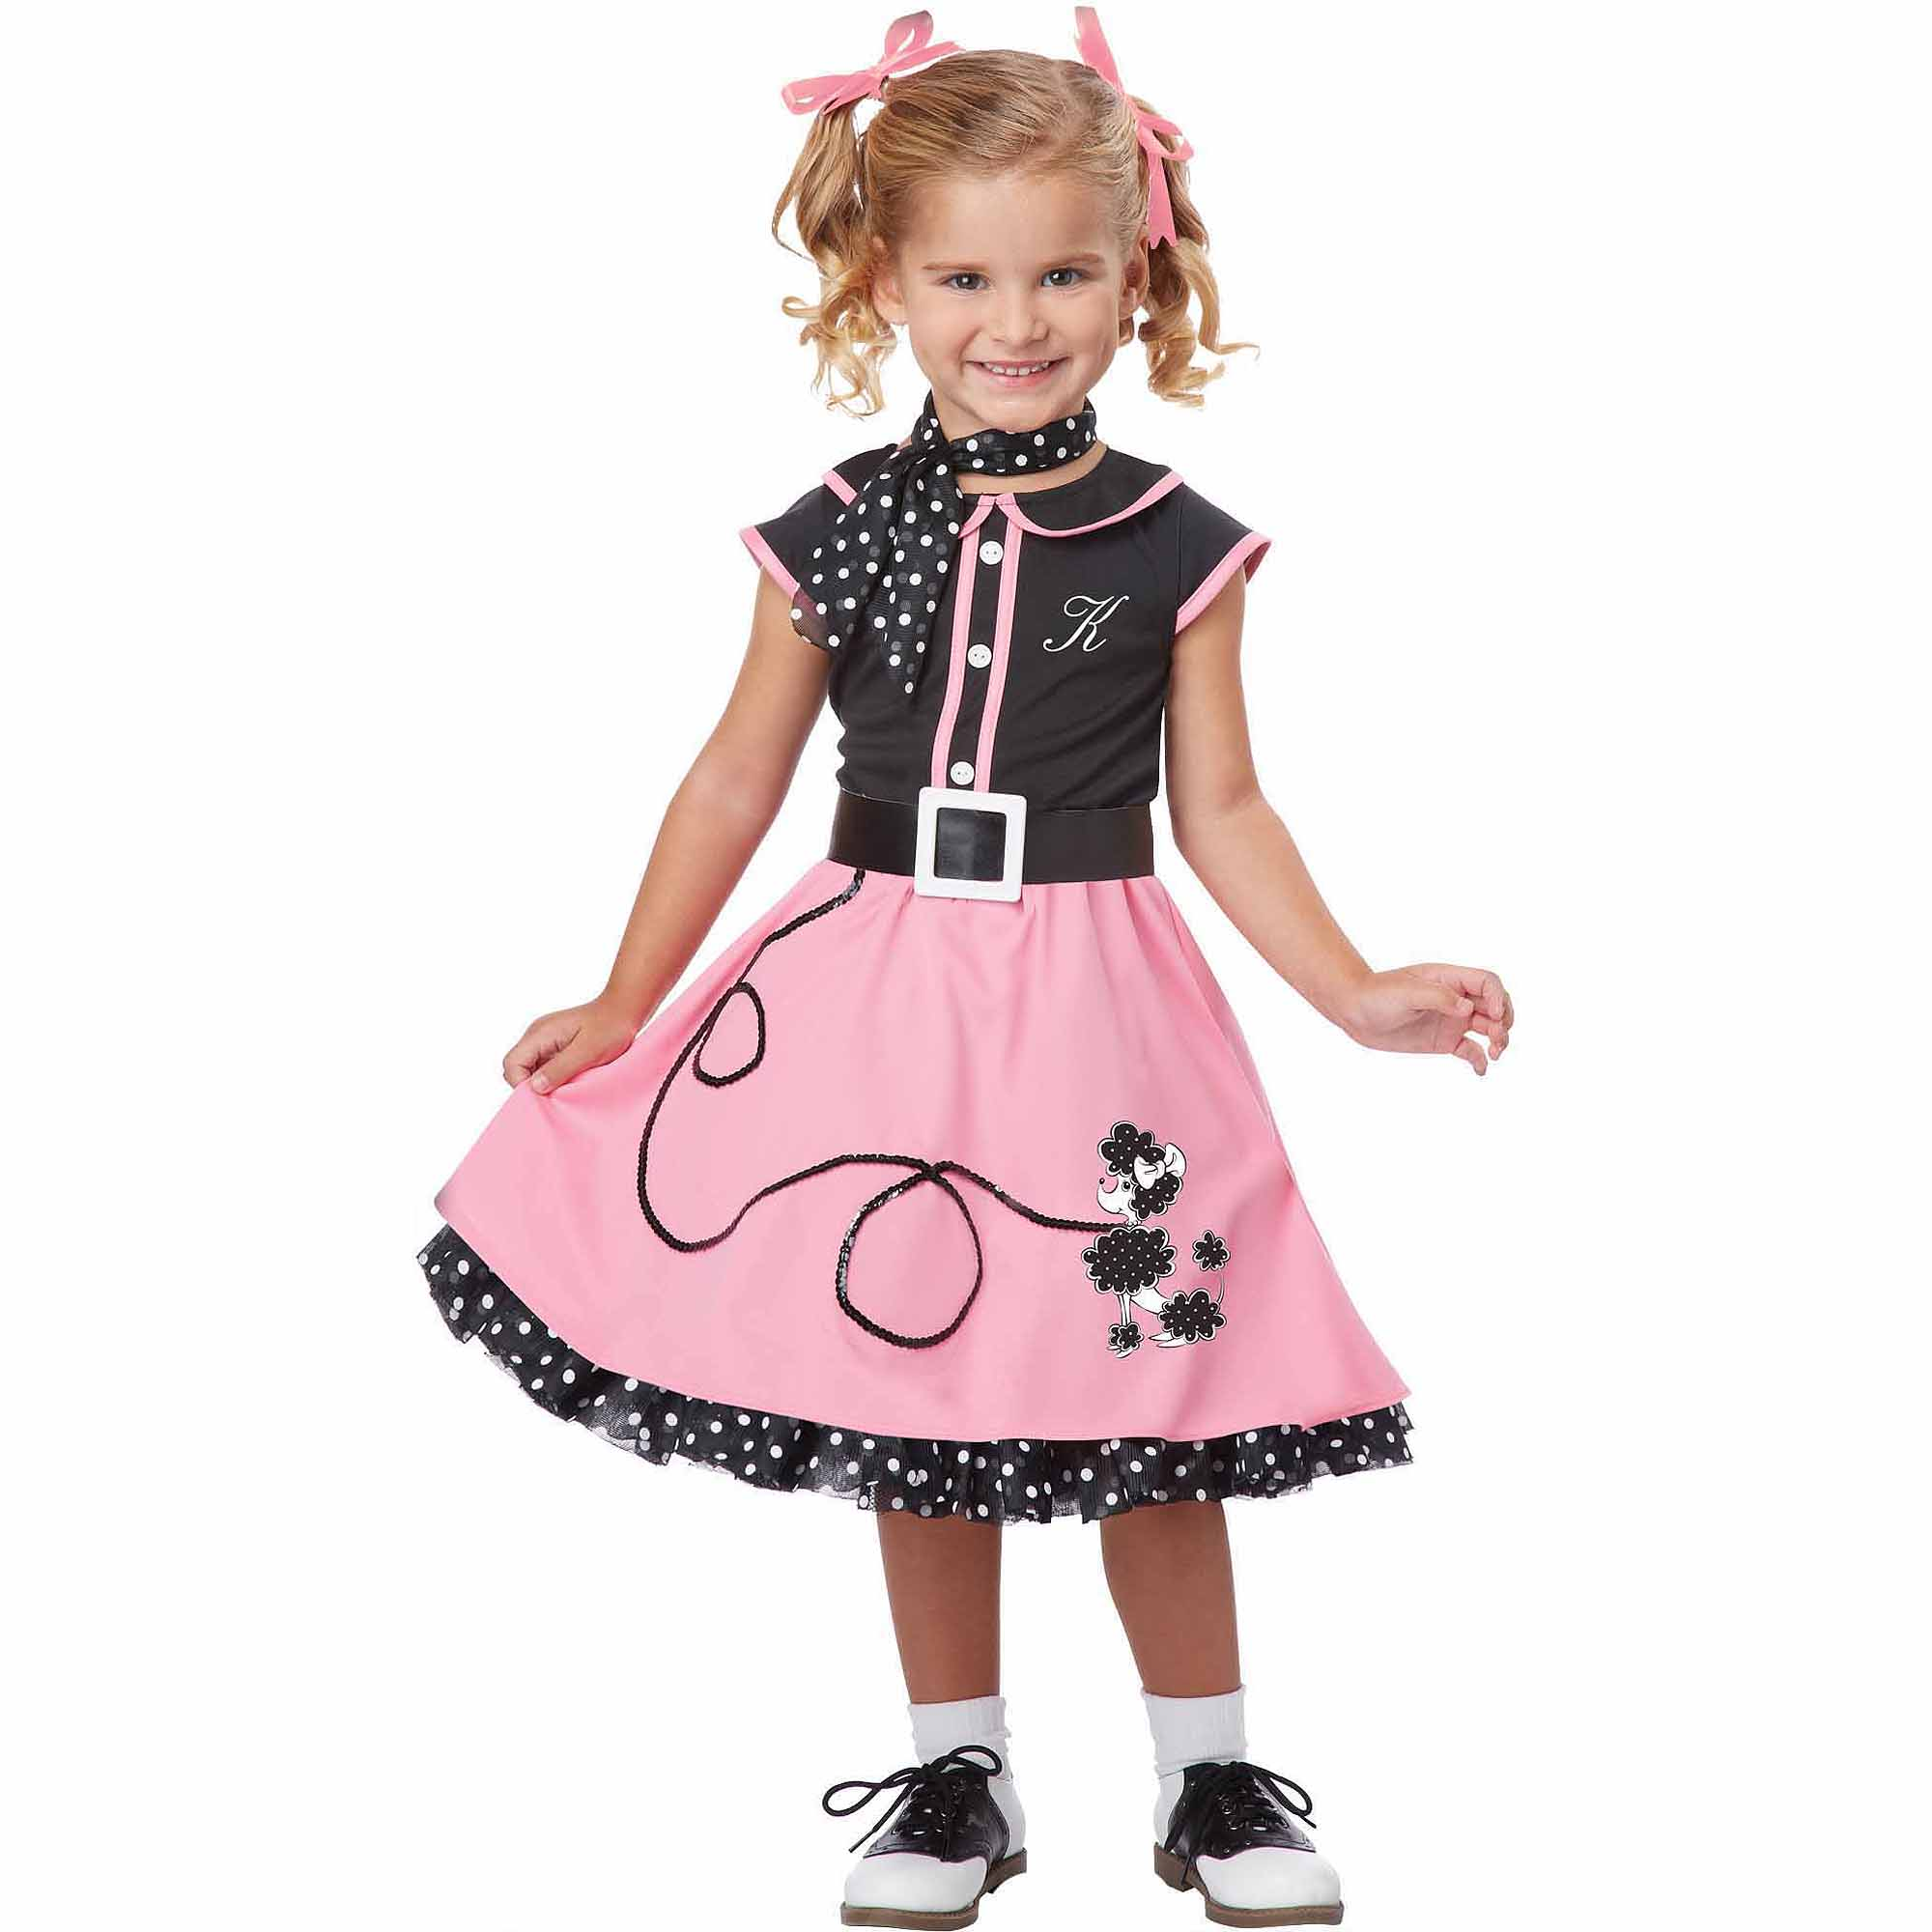 Poodle Cutie Child Halloween Costume